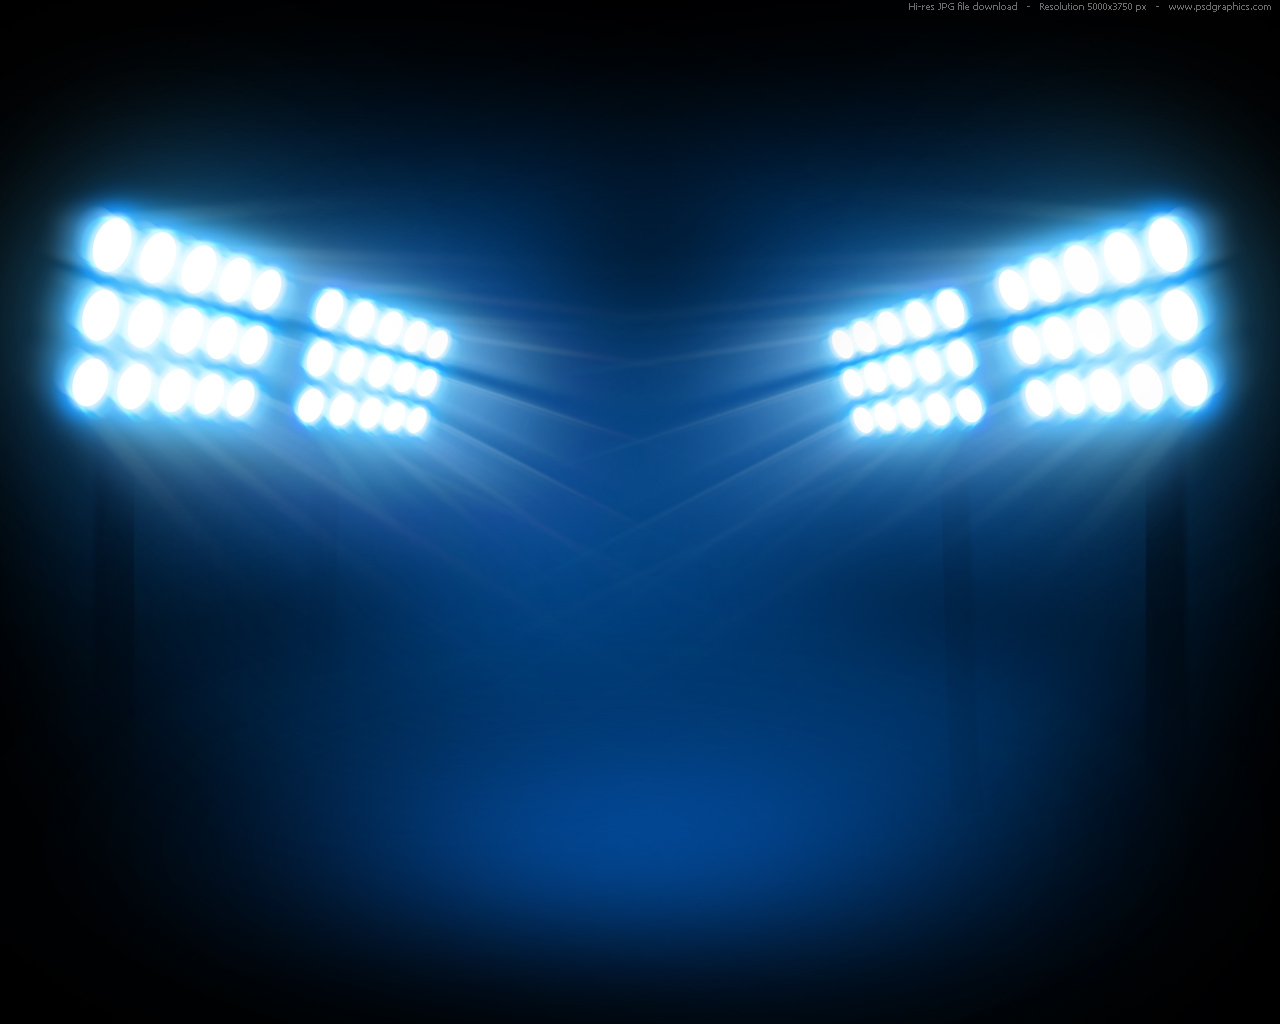 Stadium floodlights backgrounds PSDGraphics 1280x1024